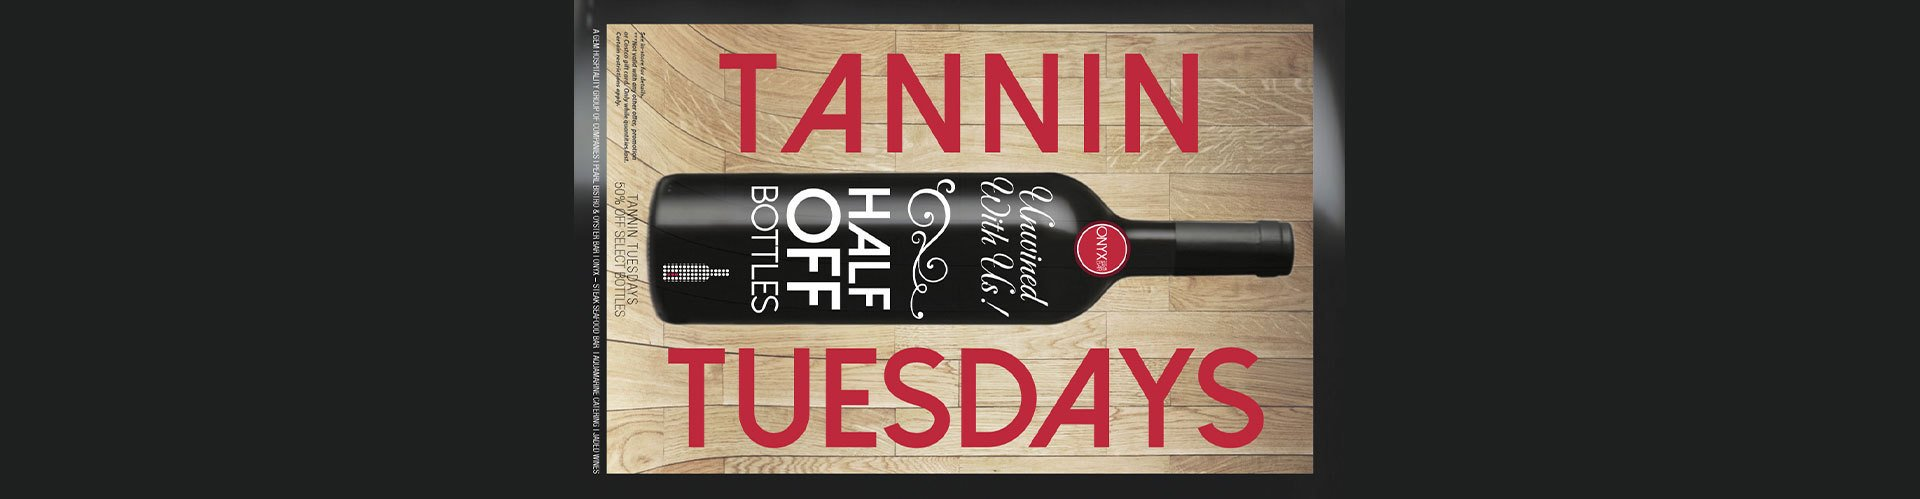 Tannin Tuesdays, half off bottles